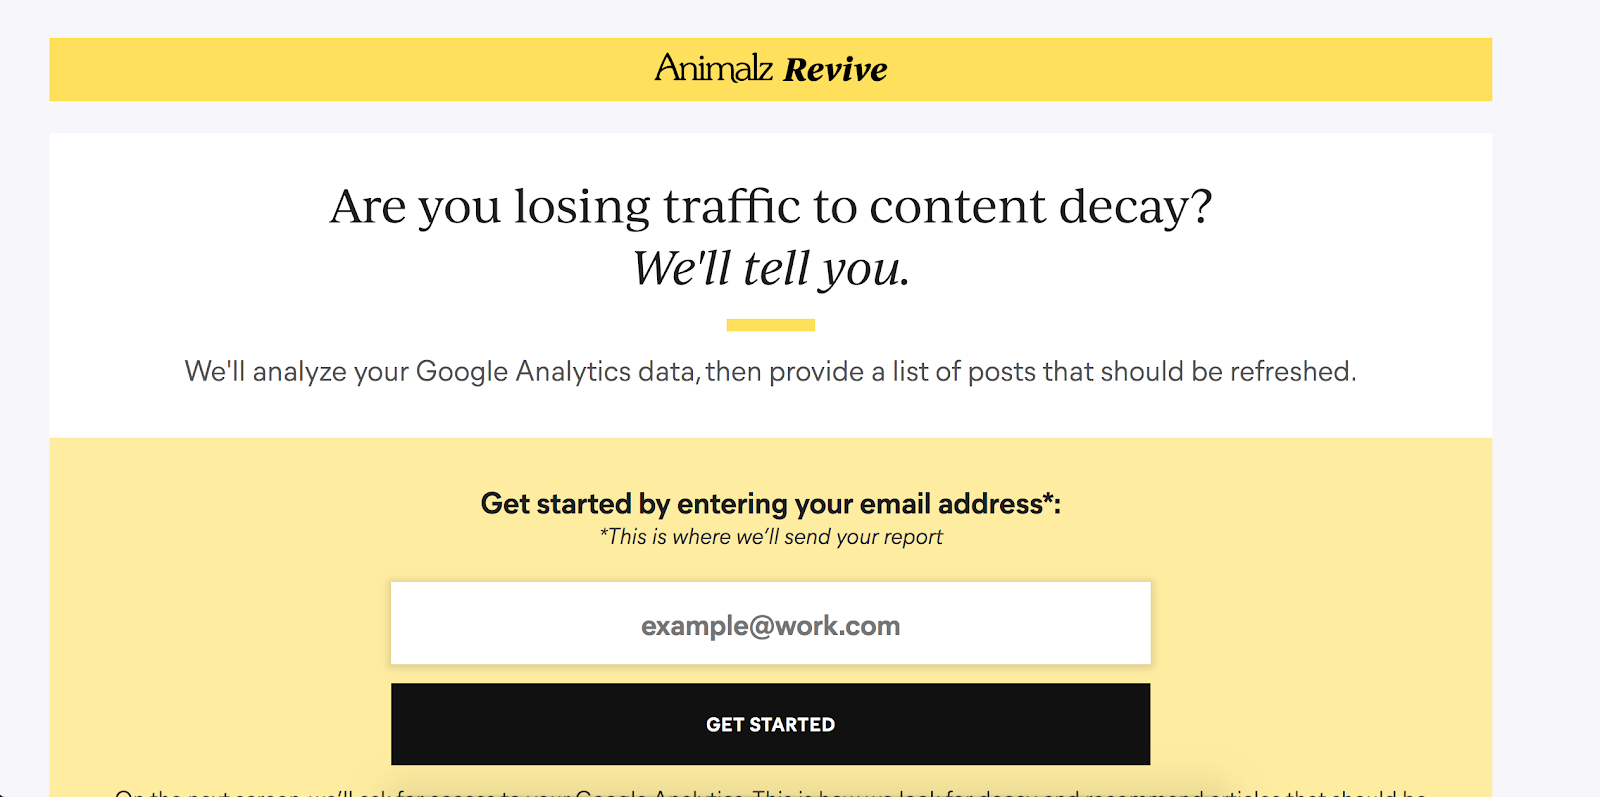 Top Marketing Tool Example #3 - Revive by Animalz | 16 Powerful Marketing Tools You Haven't Considered (But Probably Should)